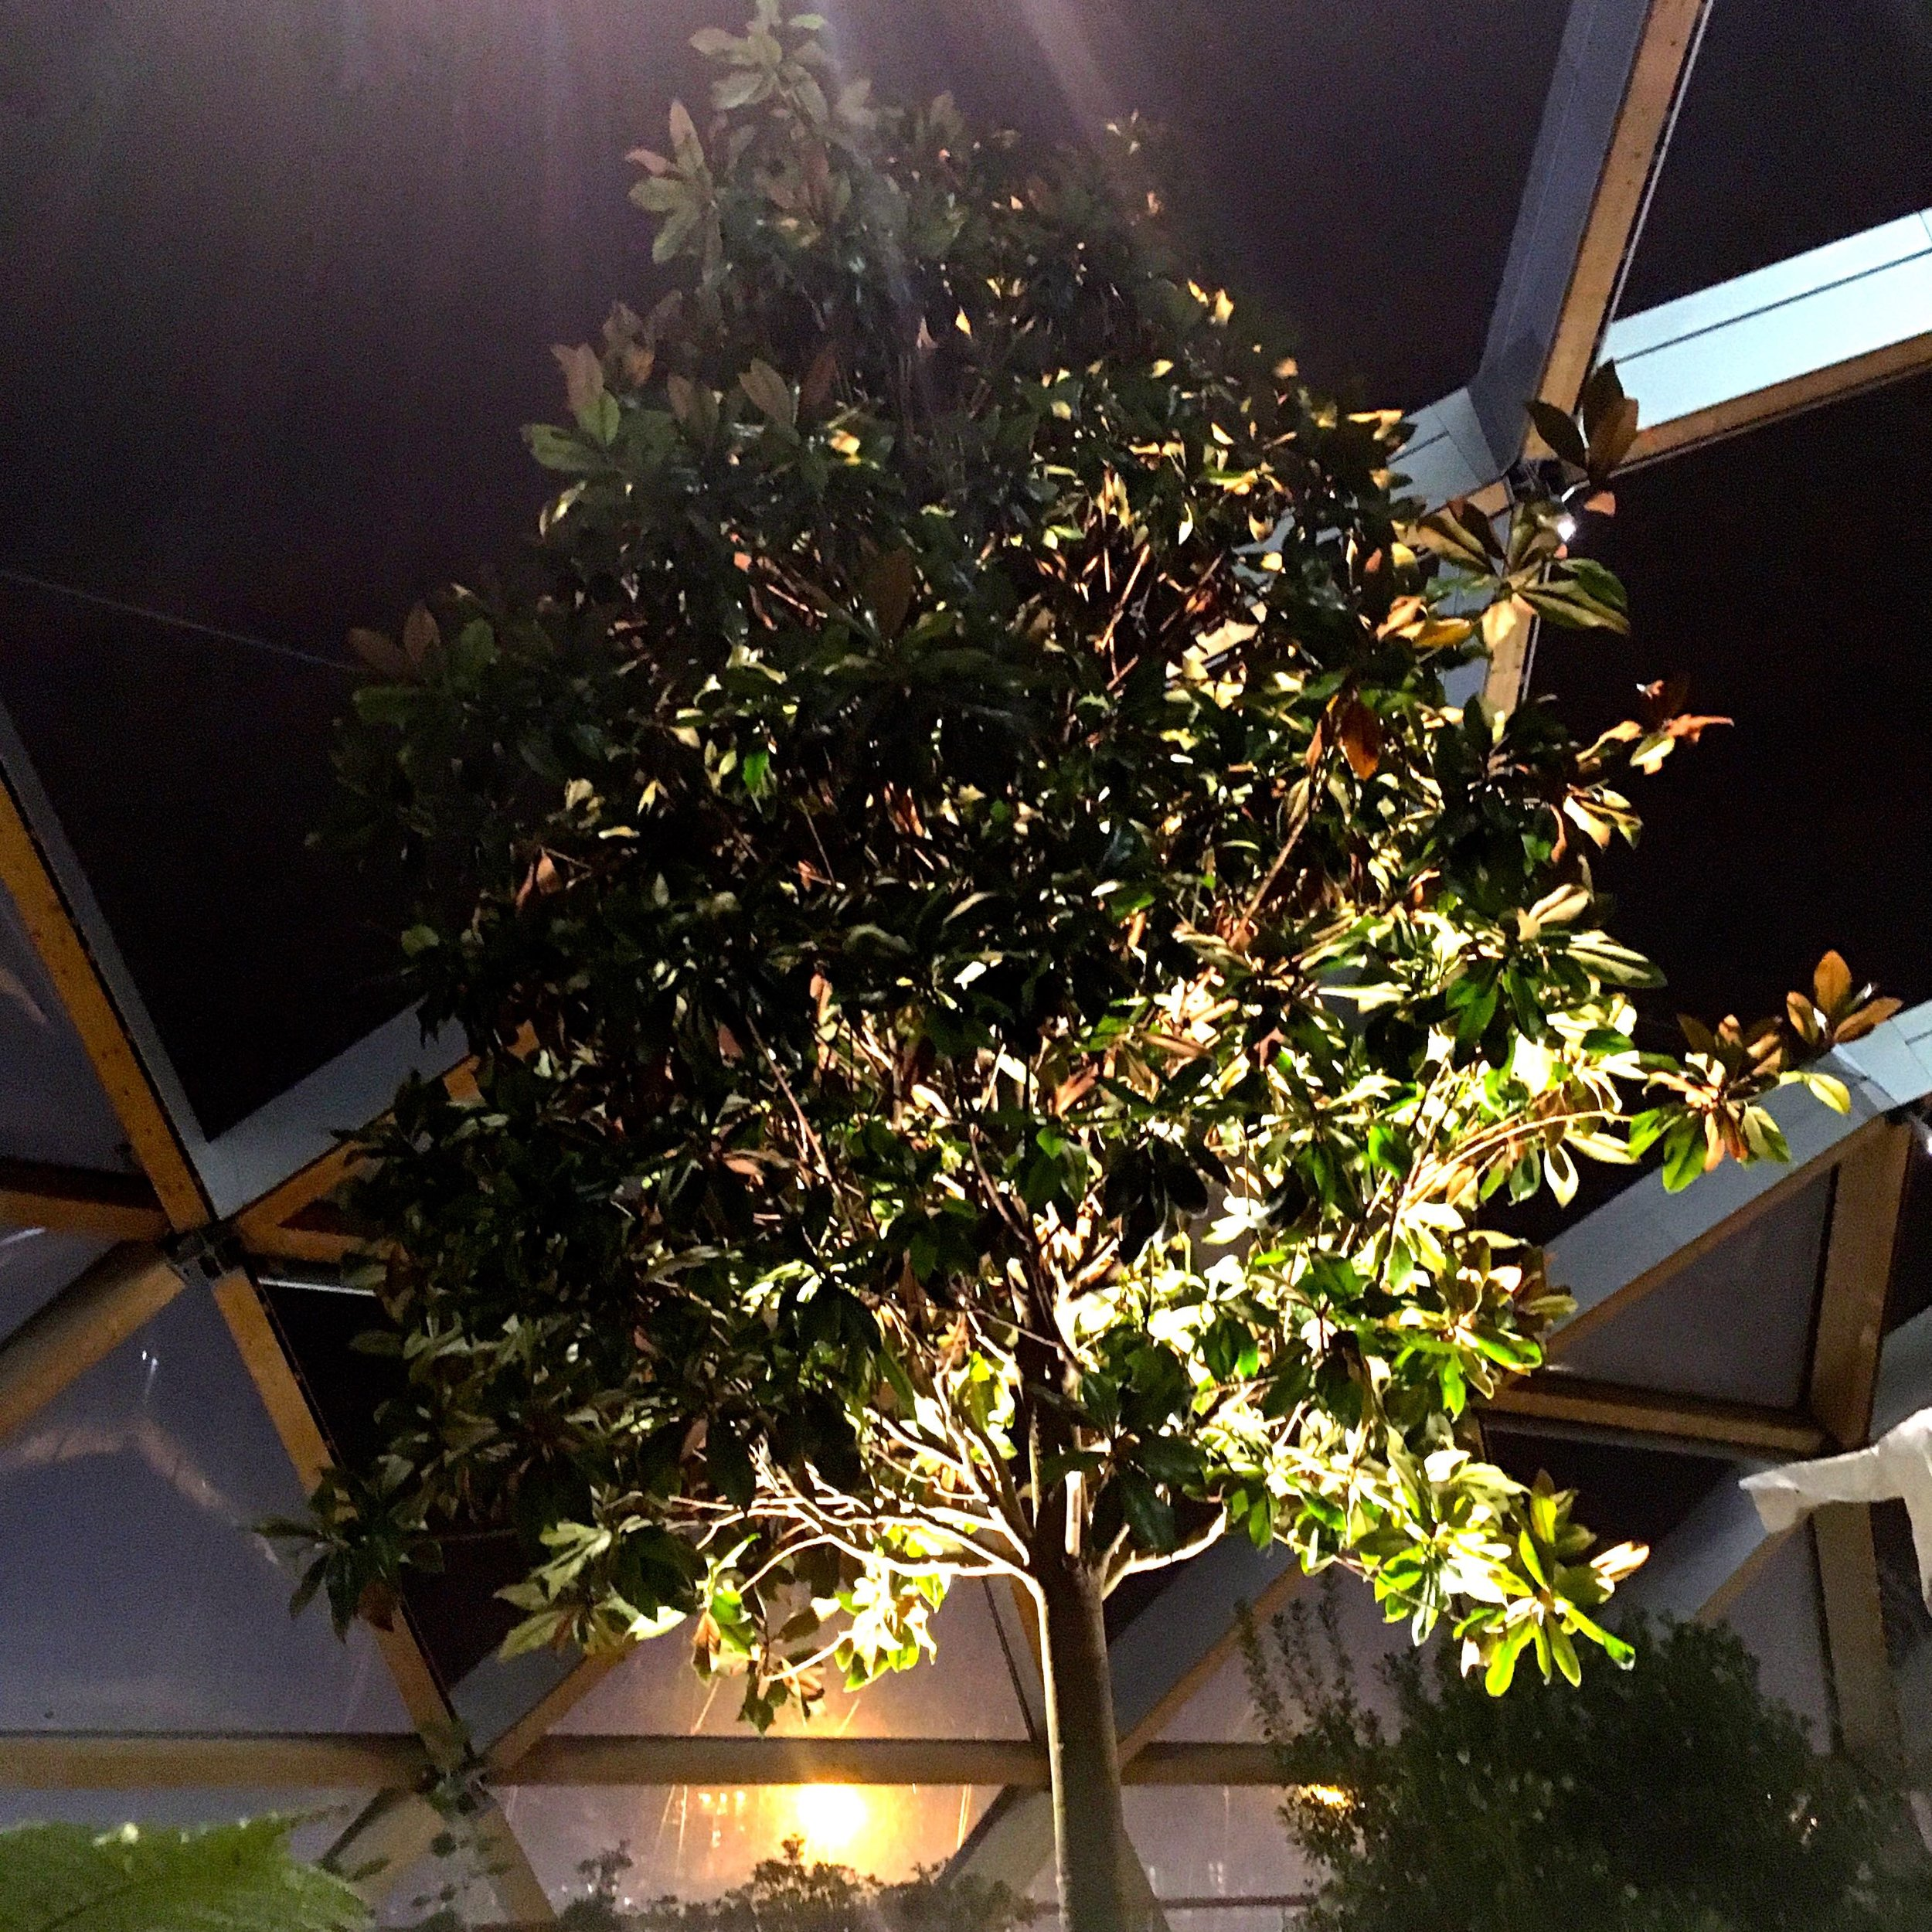 Trees in the roof garden in crossrail place in Canary Wharf